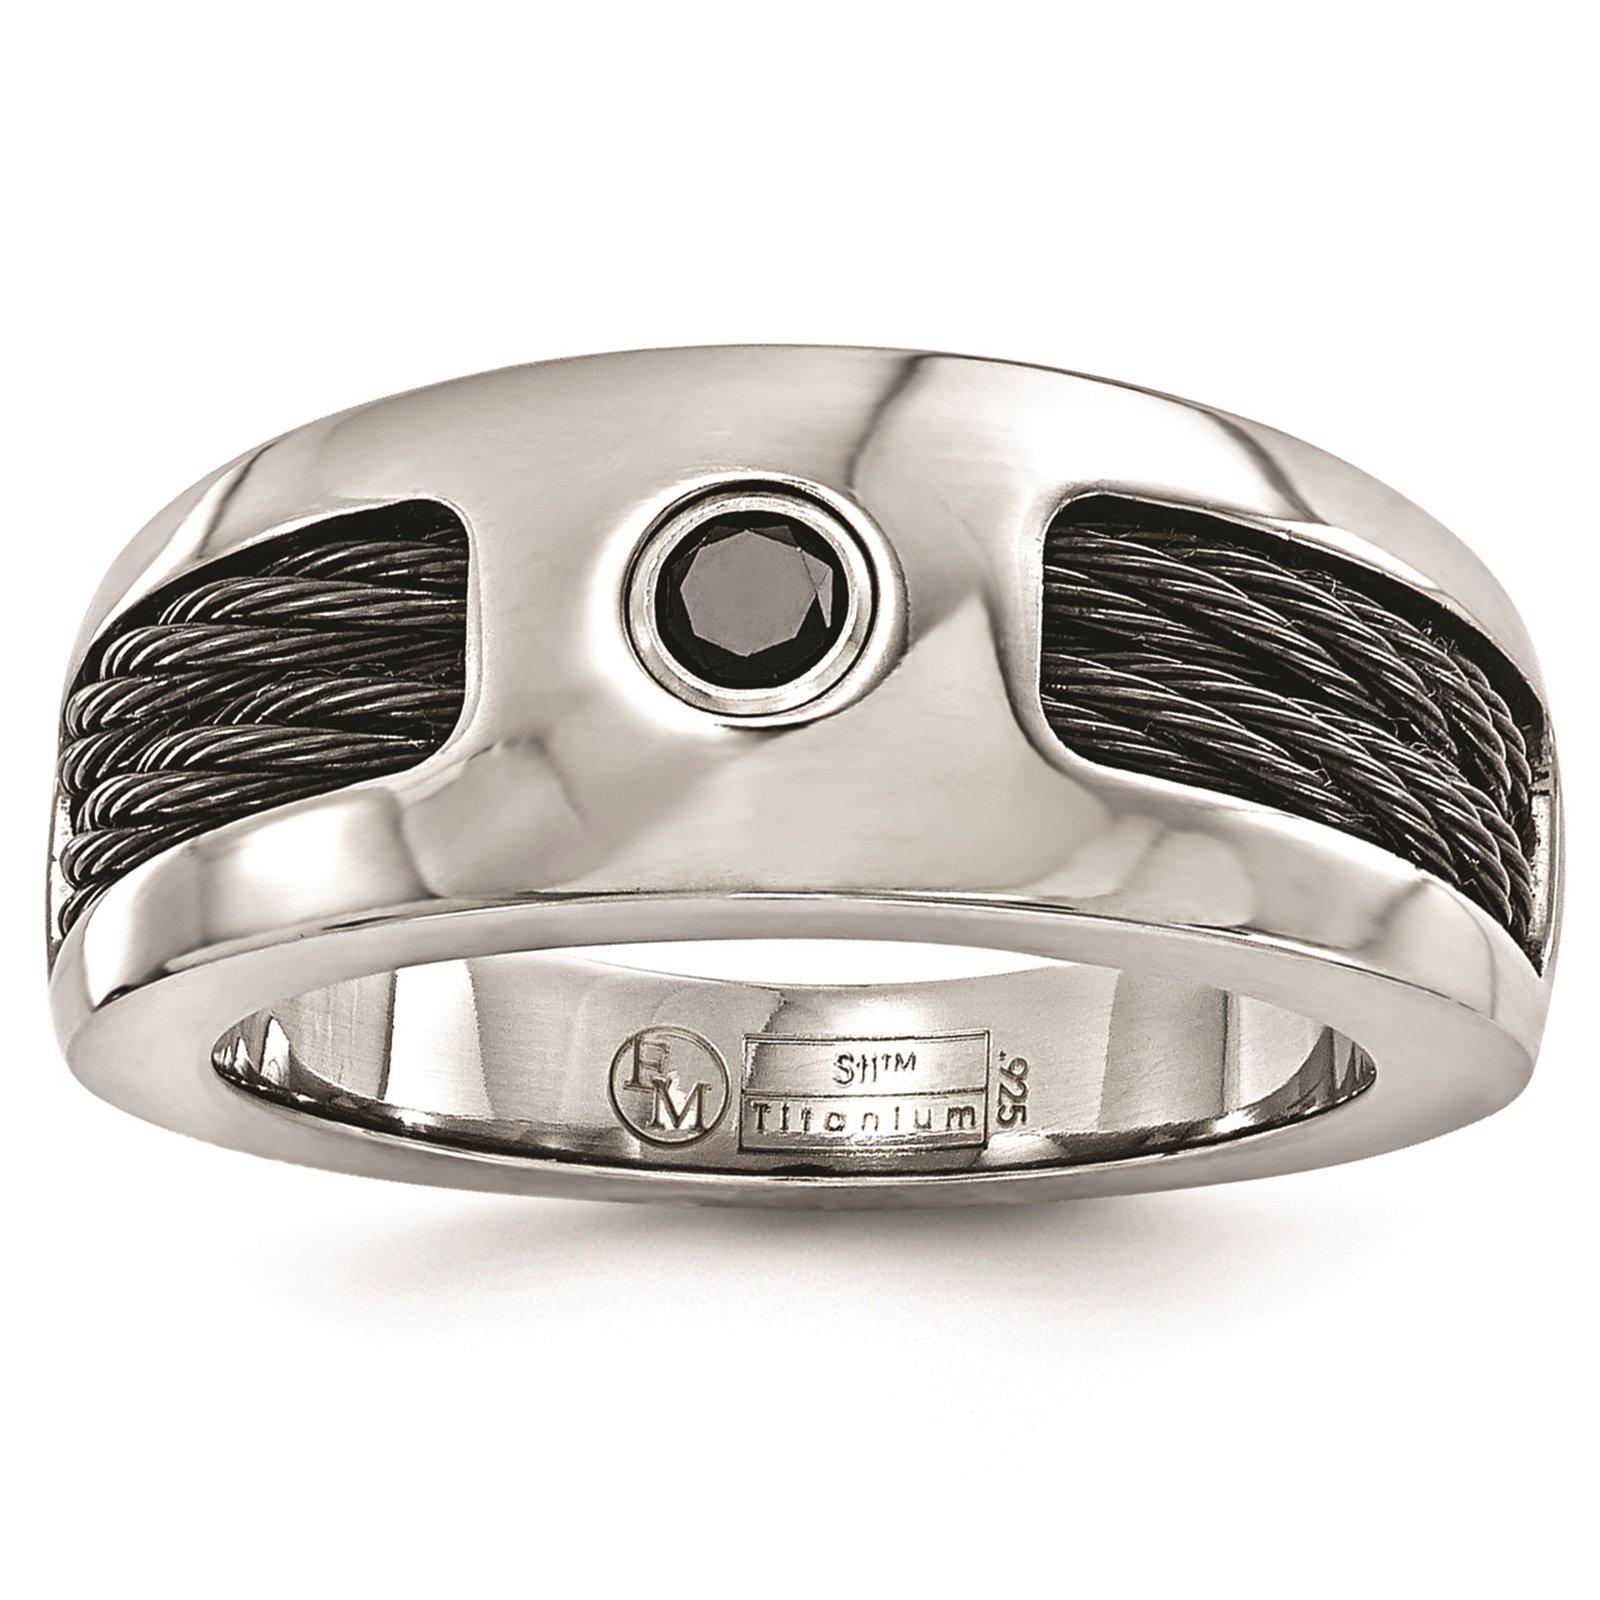 Titanium Cable & Black Spinel w/Sterling Silver Bezel 8mm Wedding Ring Band Size 8.5 by Edward Mirell